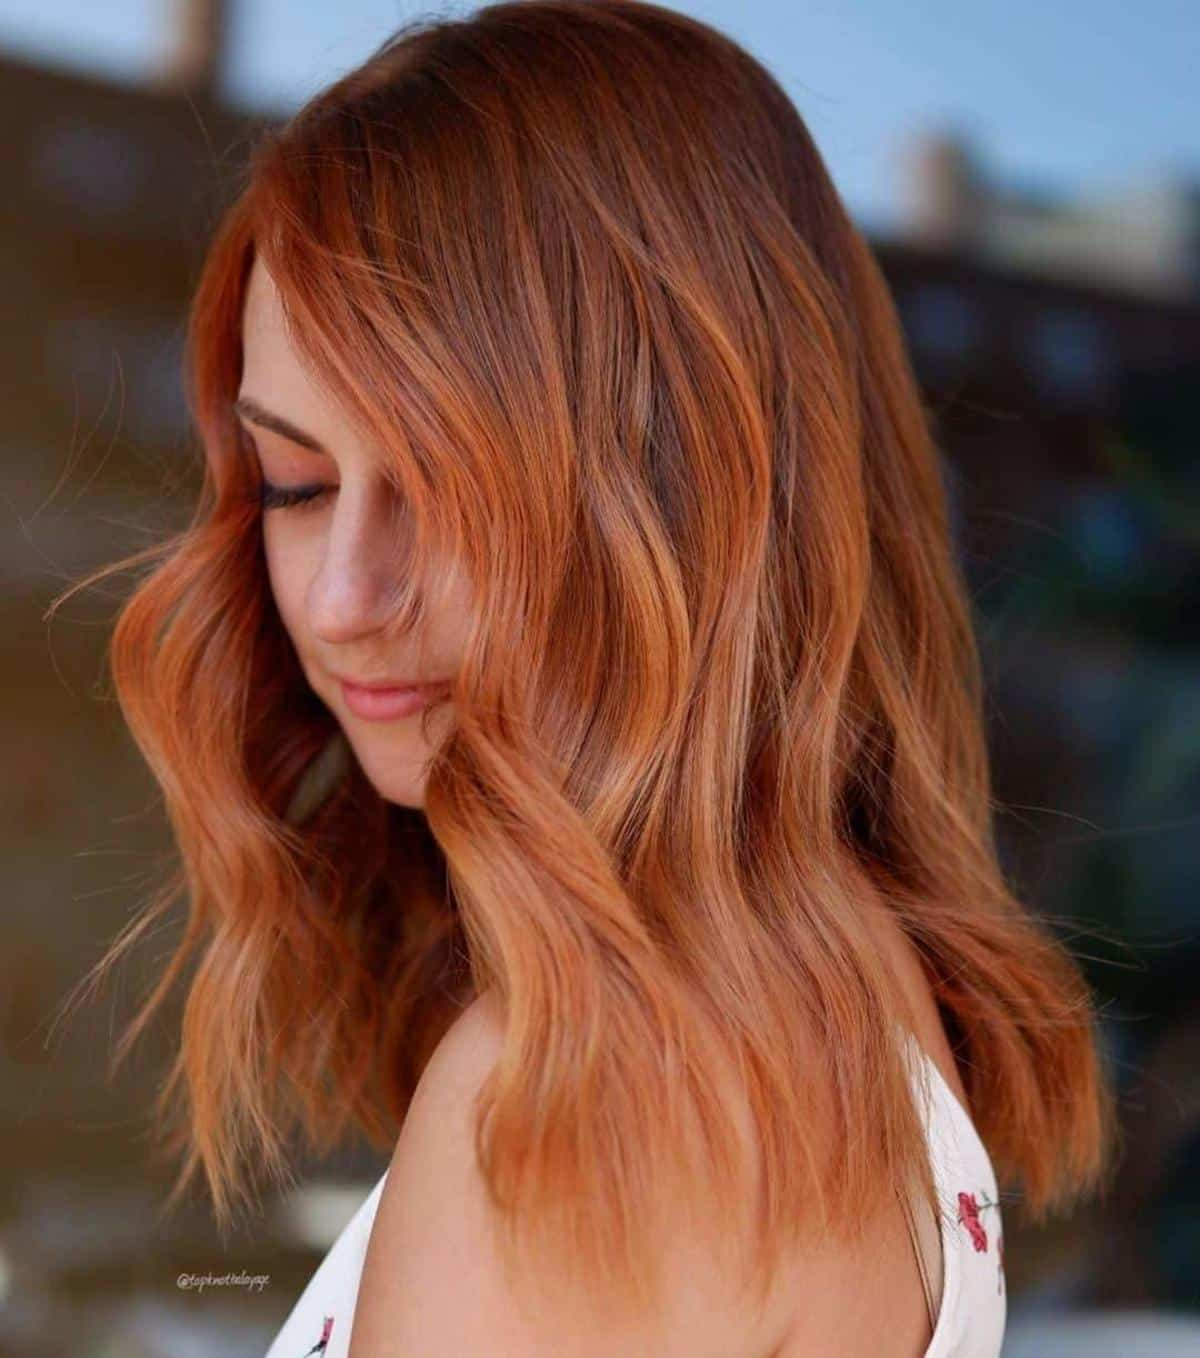 25 Trendy Ways to Pair Red Hair with Highlights